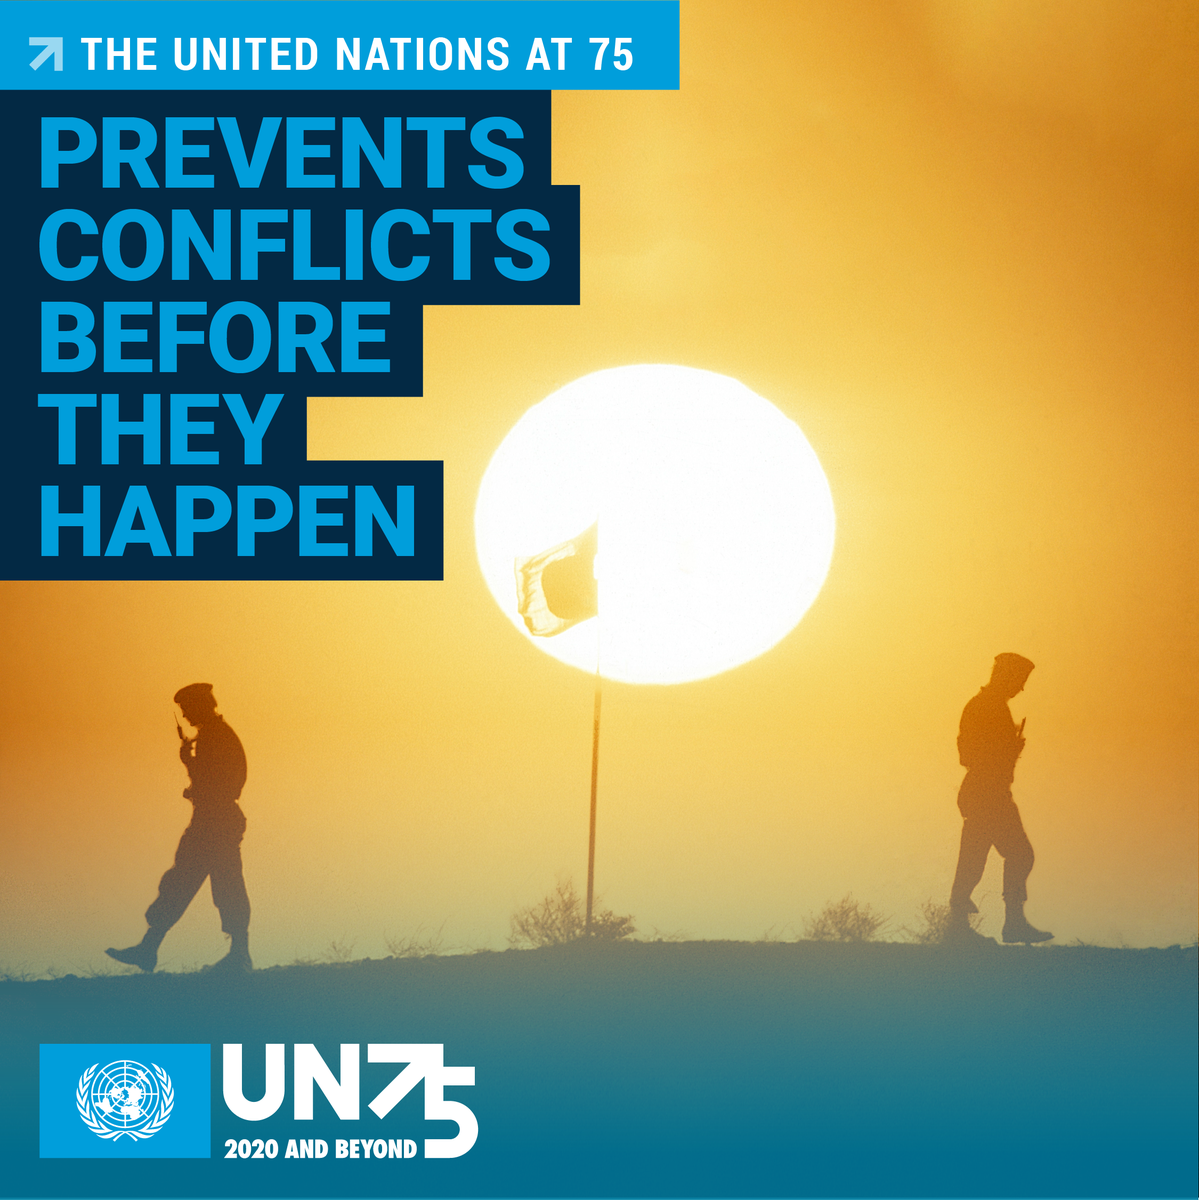 It may not always make the headlines -- but the UN works all over the world to prevent conflict and keep peace & stability. As the UN turns 75, see how else the Organization makes a difference in the lives of everyone, everywhere: un.org/en/un75 #UN75